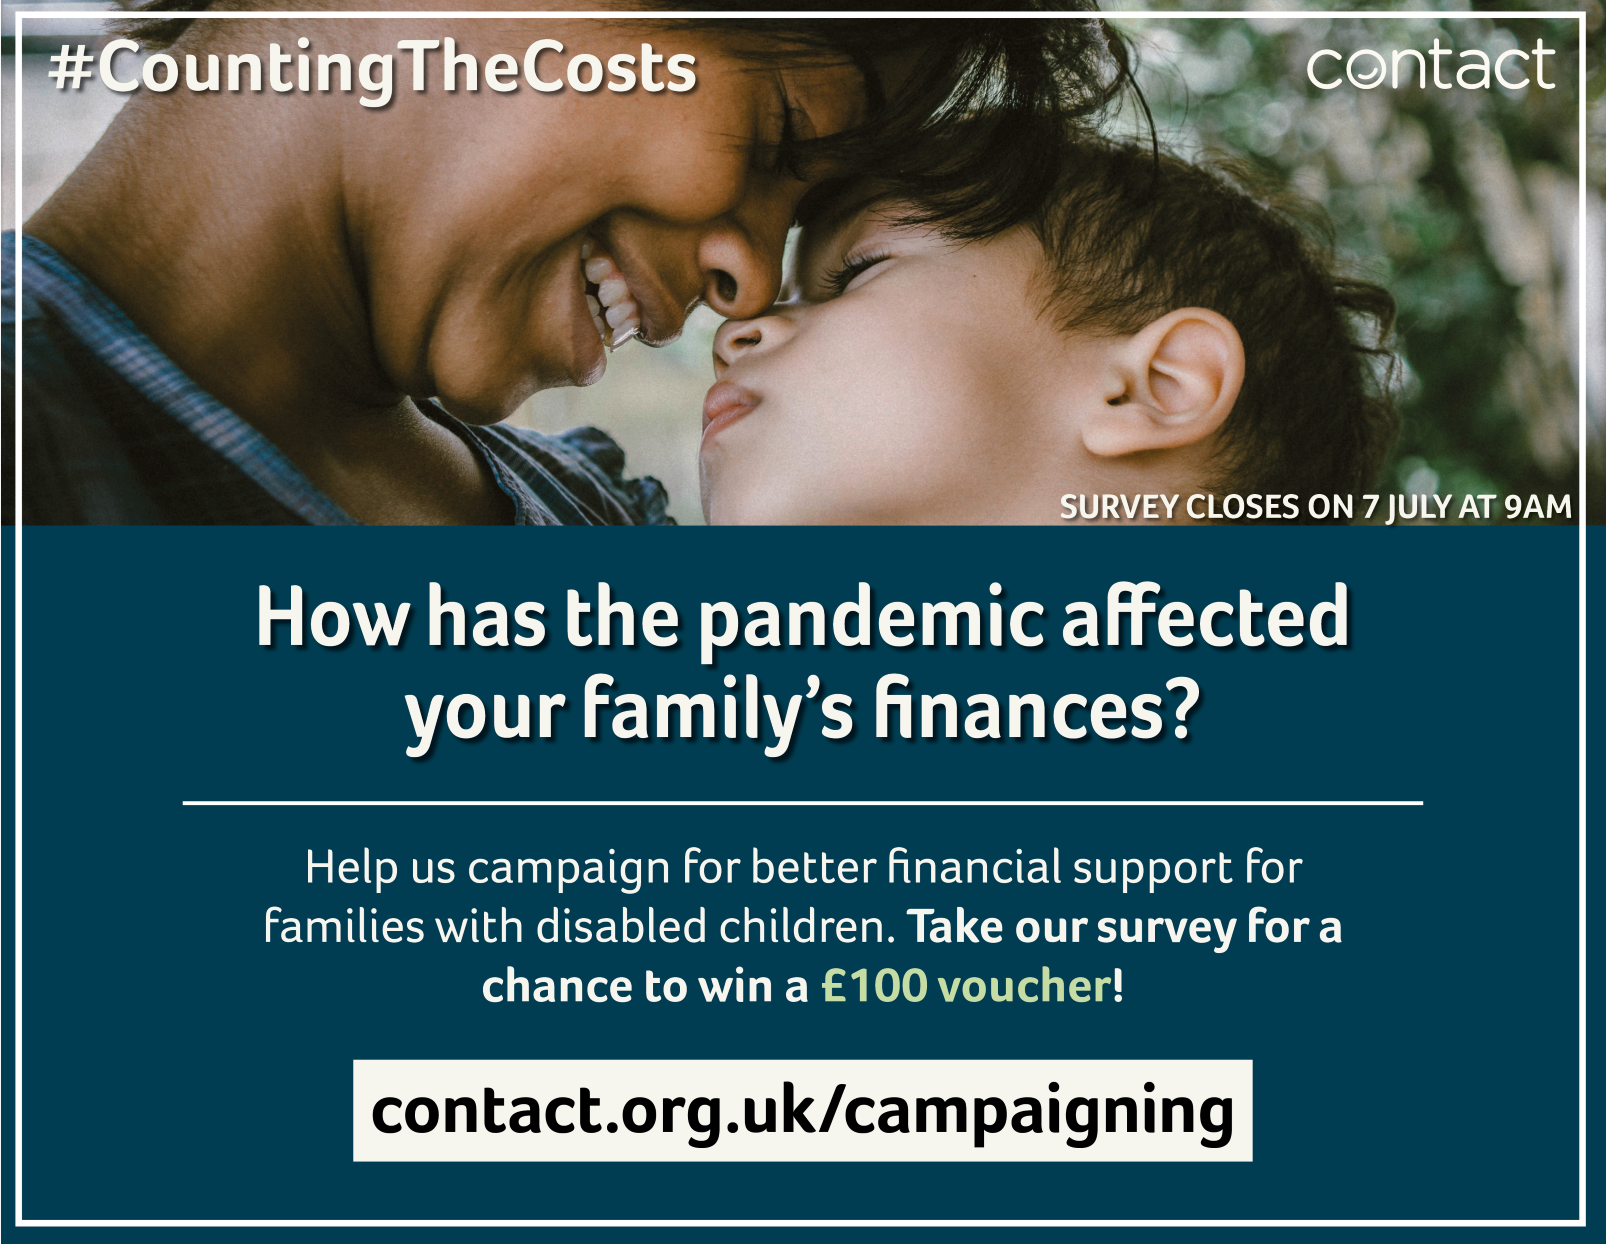 How has the pandemic affected your family's finances? Help us campaign for better financial support for families with disabled children. Take our survey for a chance to win a £100 voucher!